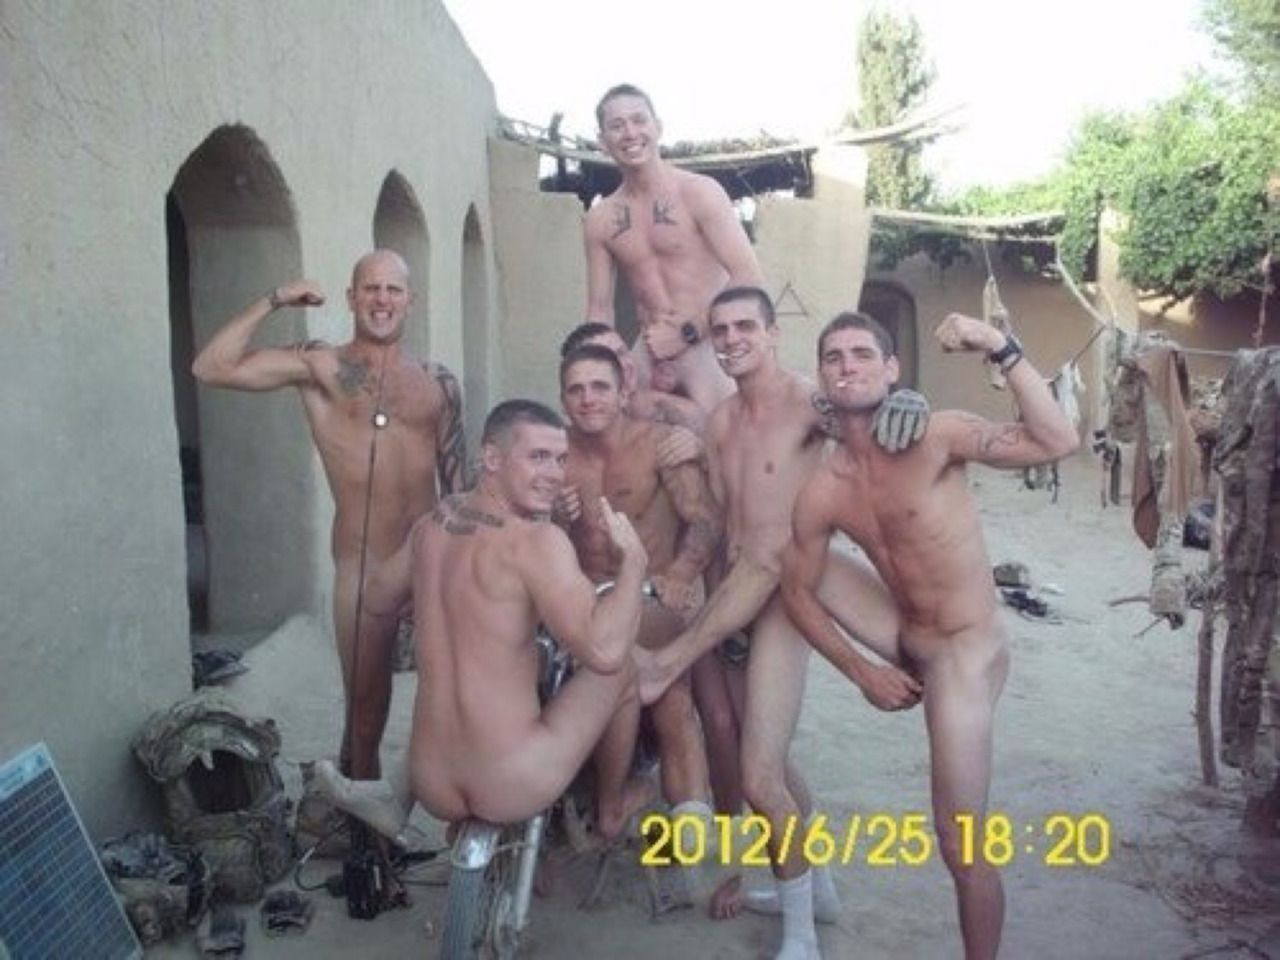 from Brennan hot gay army group sex